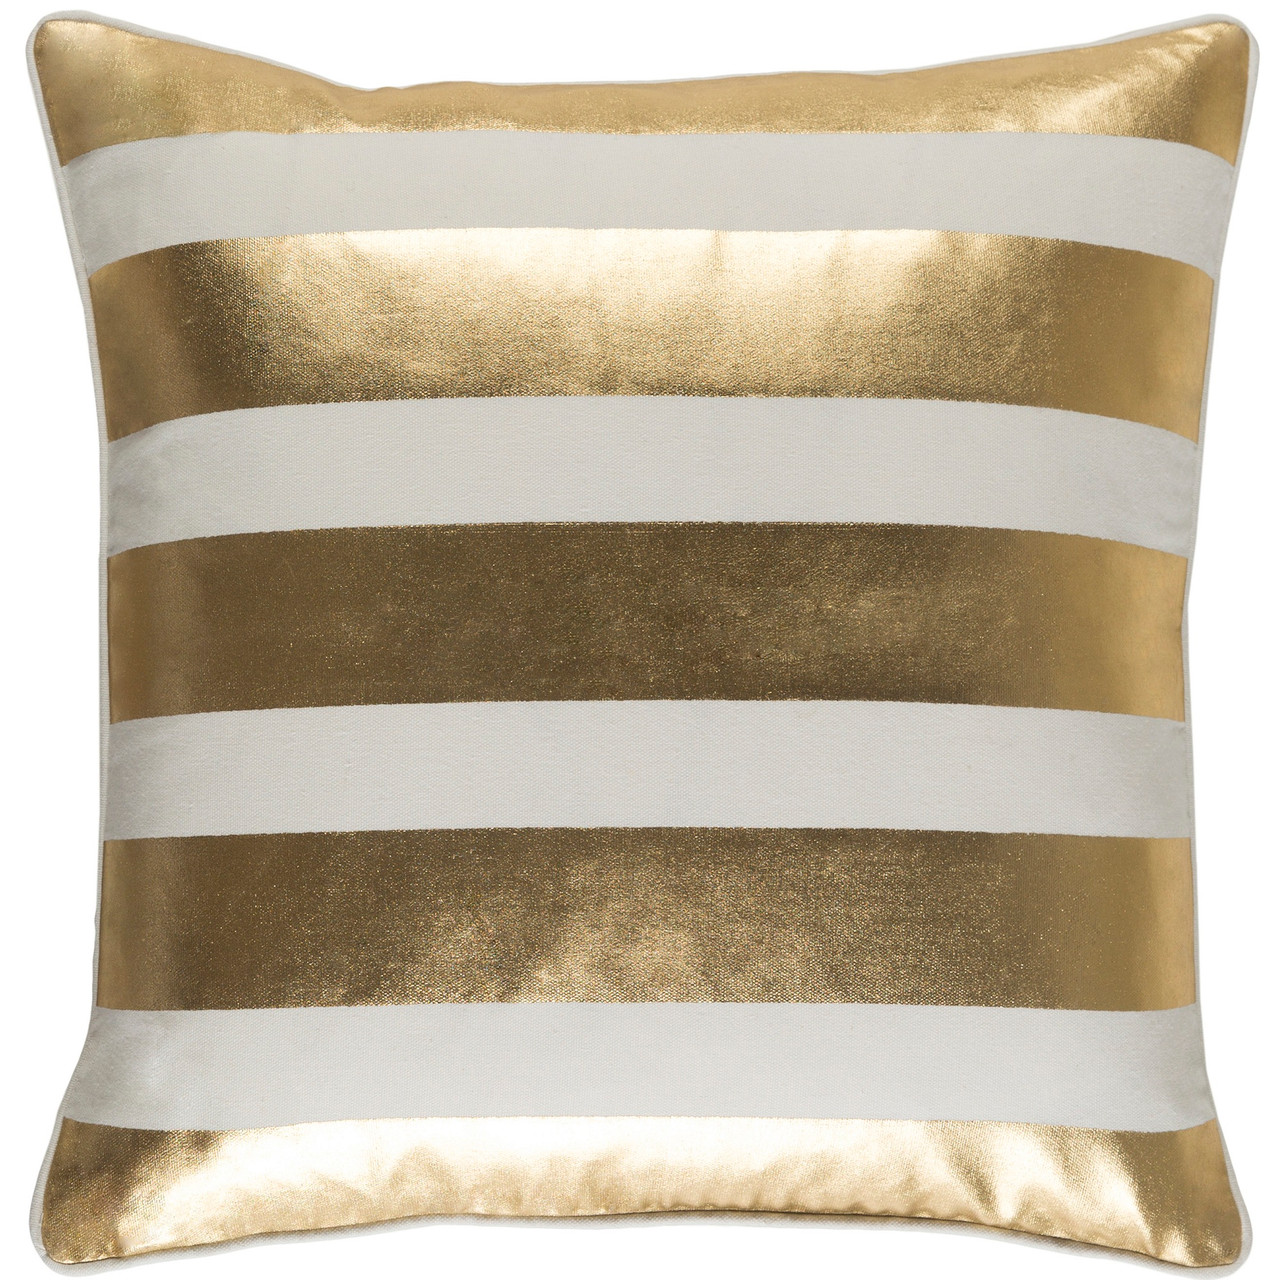 18 metallic gold and beige foil printed stripe design square throw pillow cover